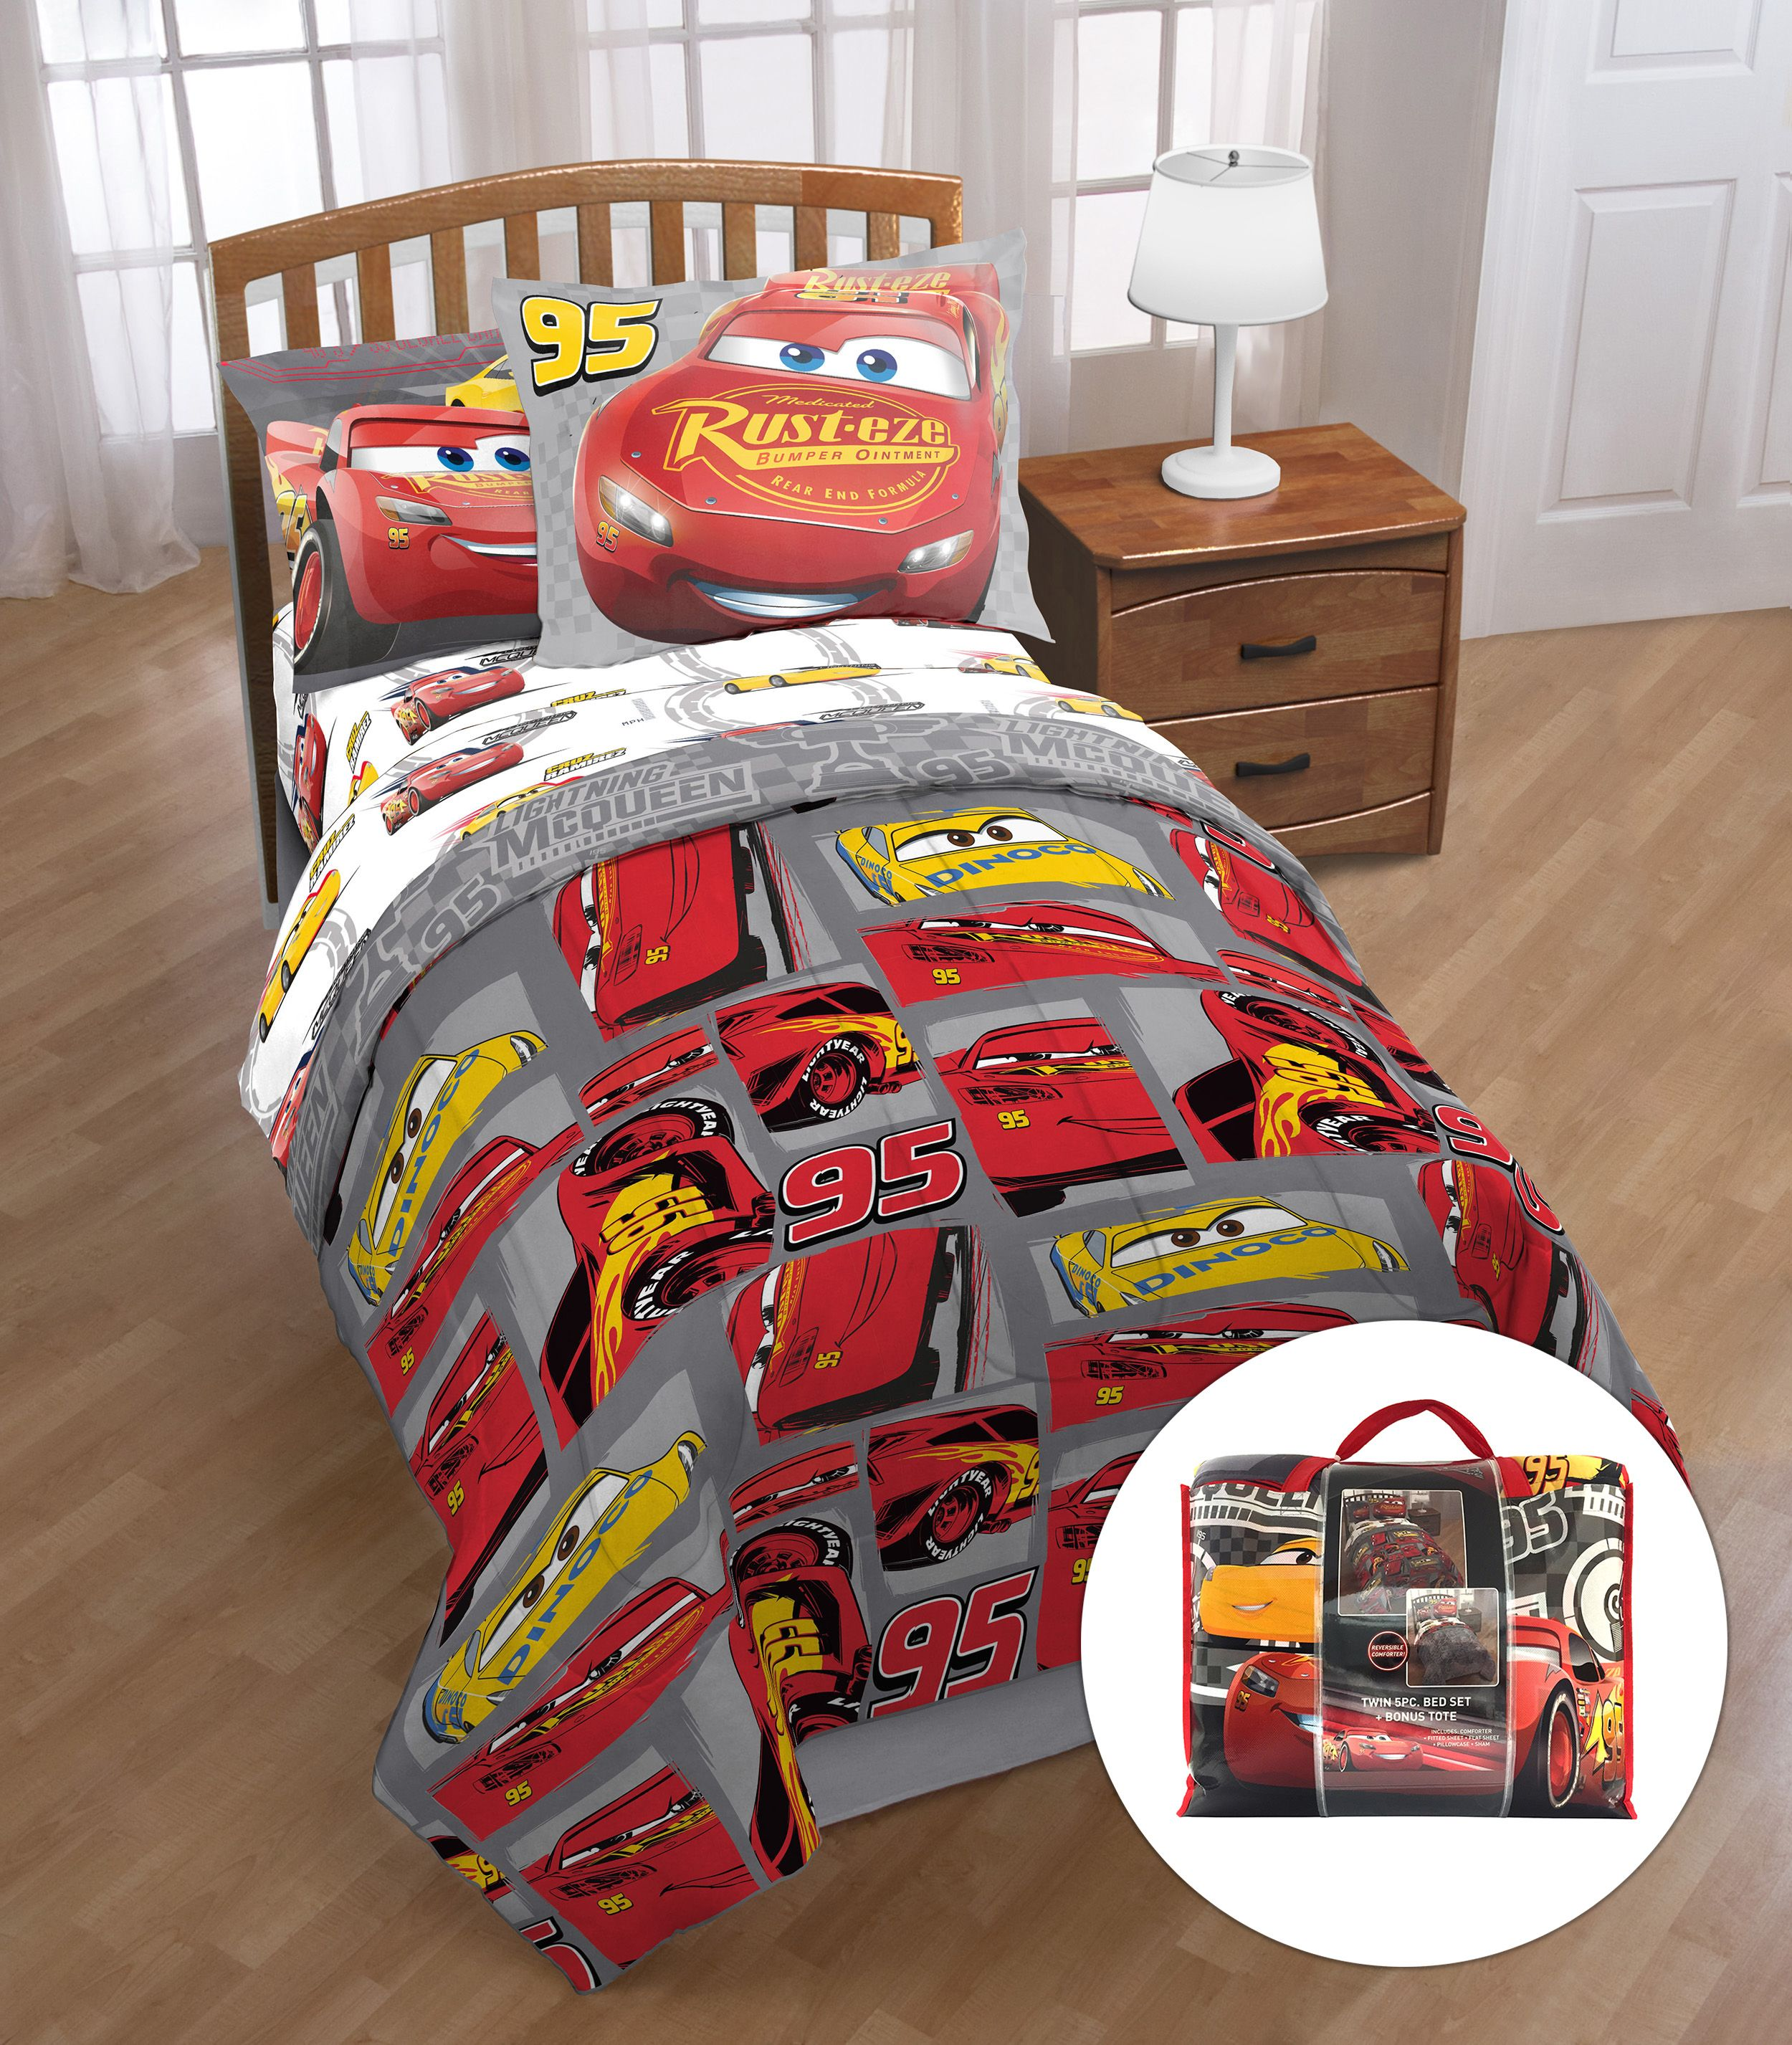 Disney's Cars 5-Piece Bed in a Bag with Bonus Tote by Jay Franco & Sons